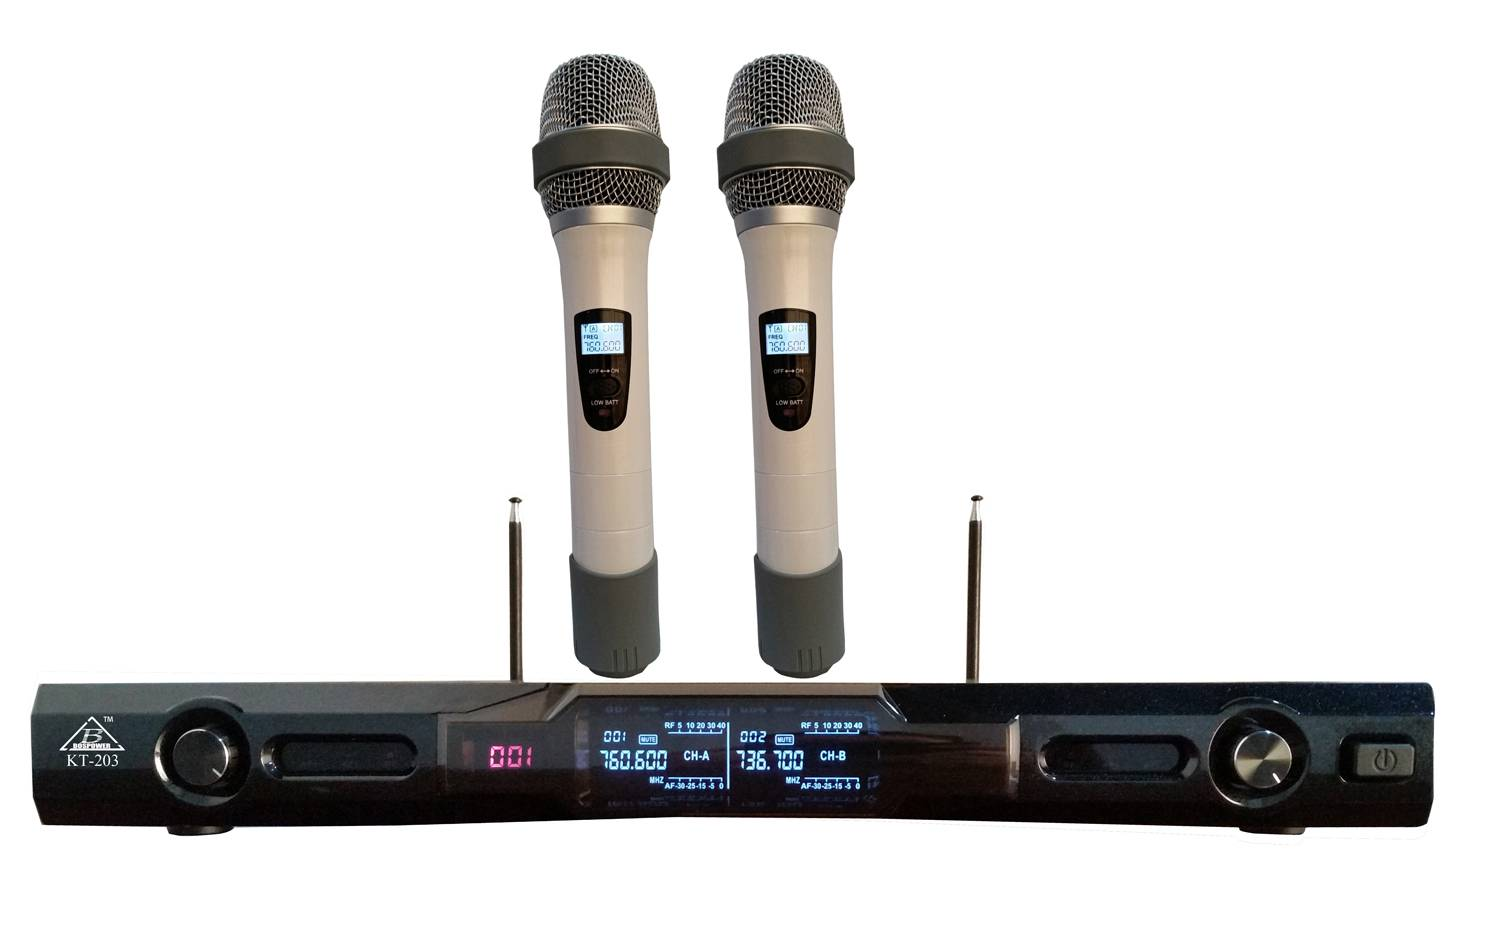 KT-208 wireless microphone professional audio equipemnt